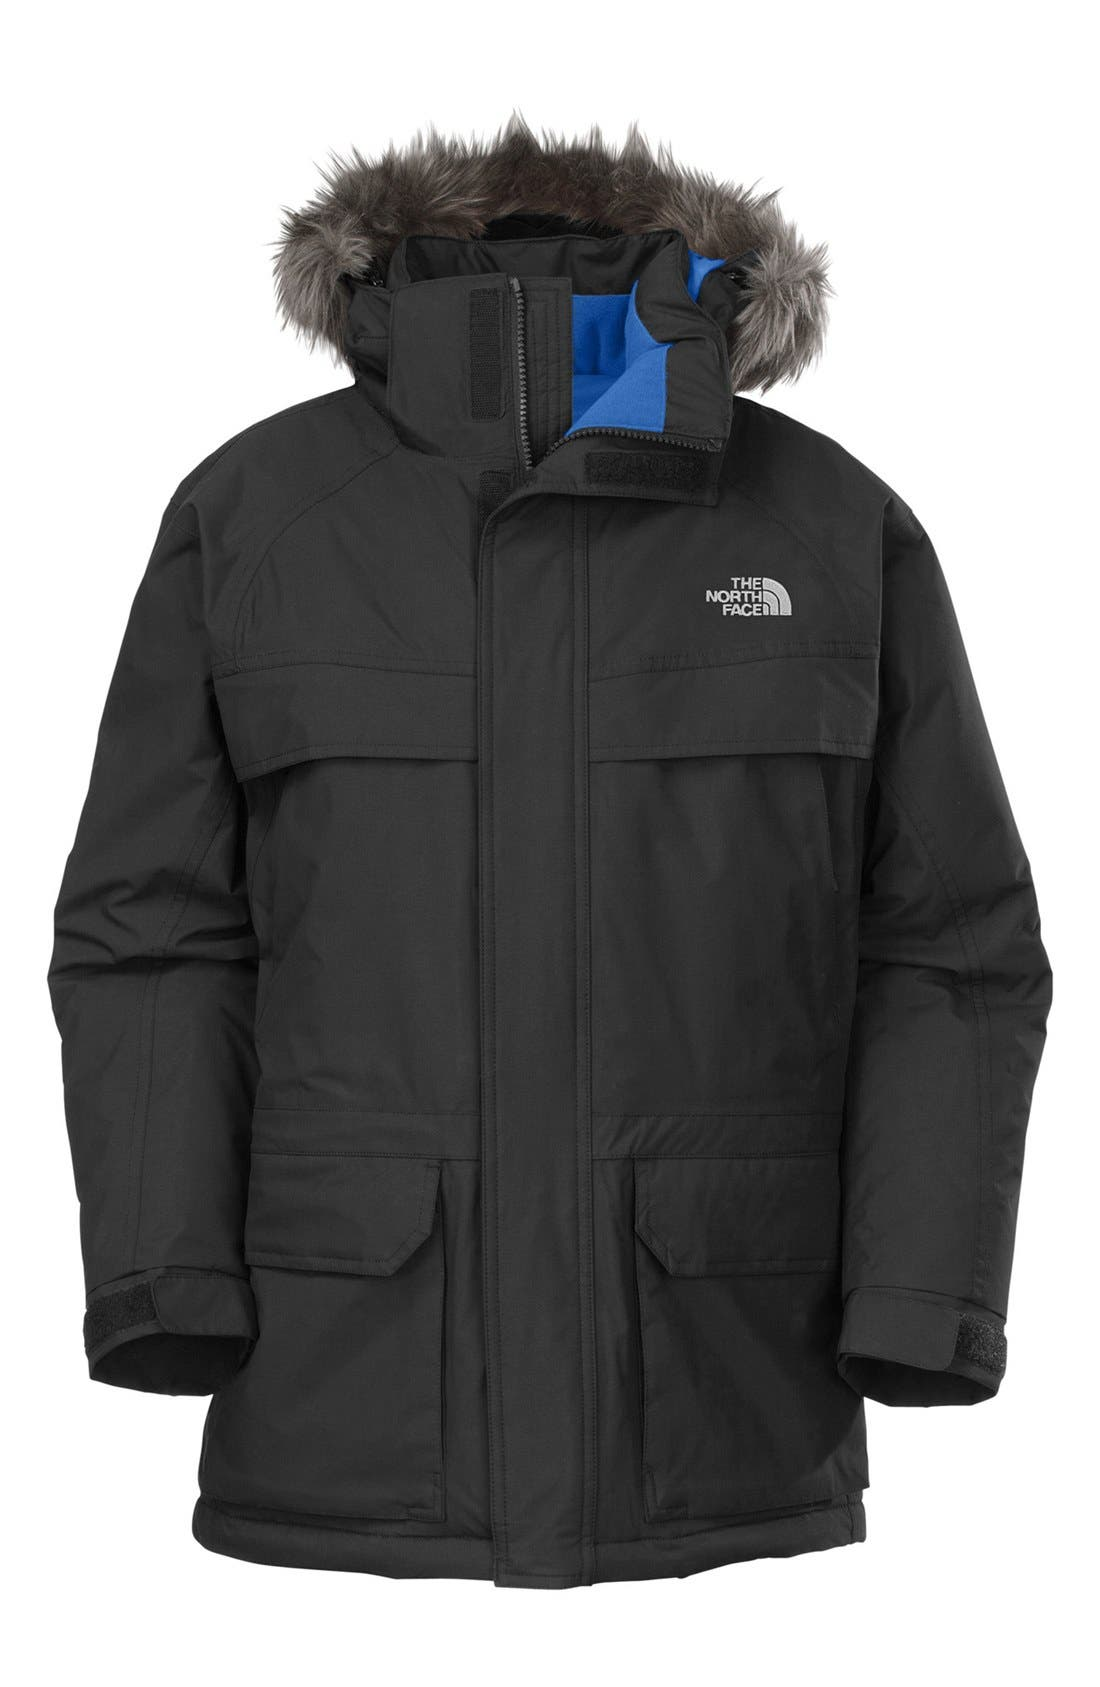 Main Image - The North Face 'McMurdo' HyVent® Waterproof Heatseeker Parka with Faux Fur Trim (Big Boys)